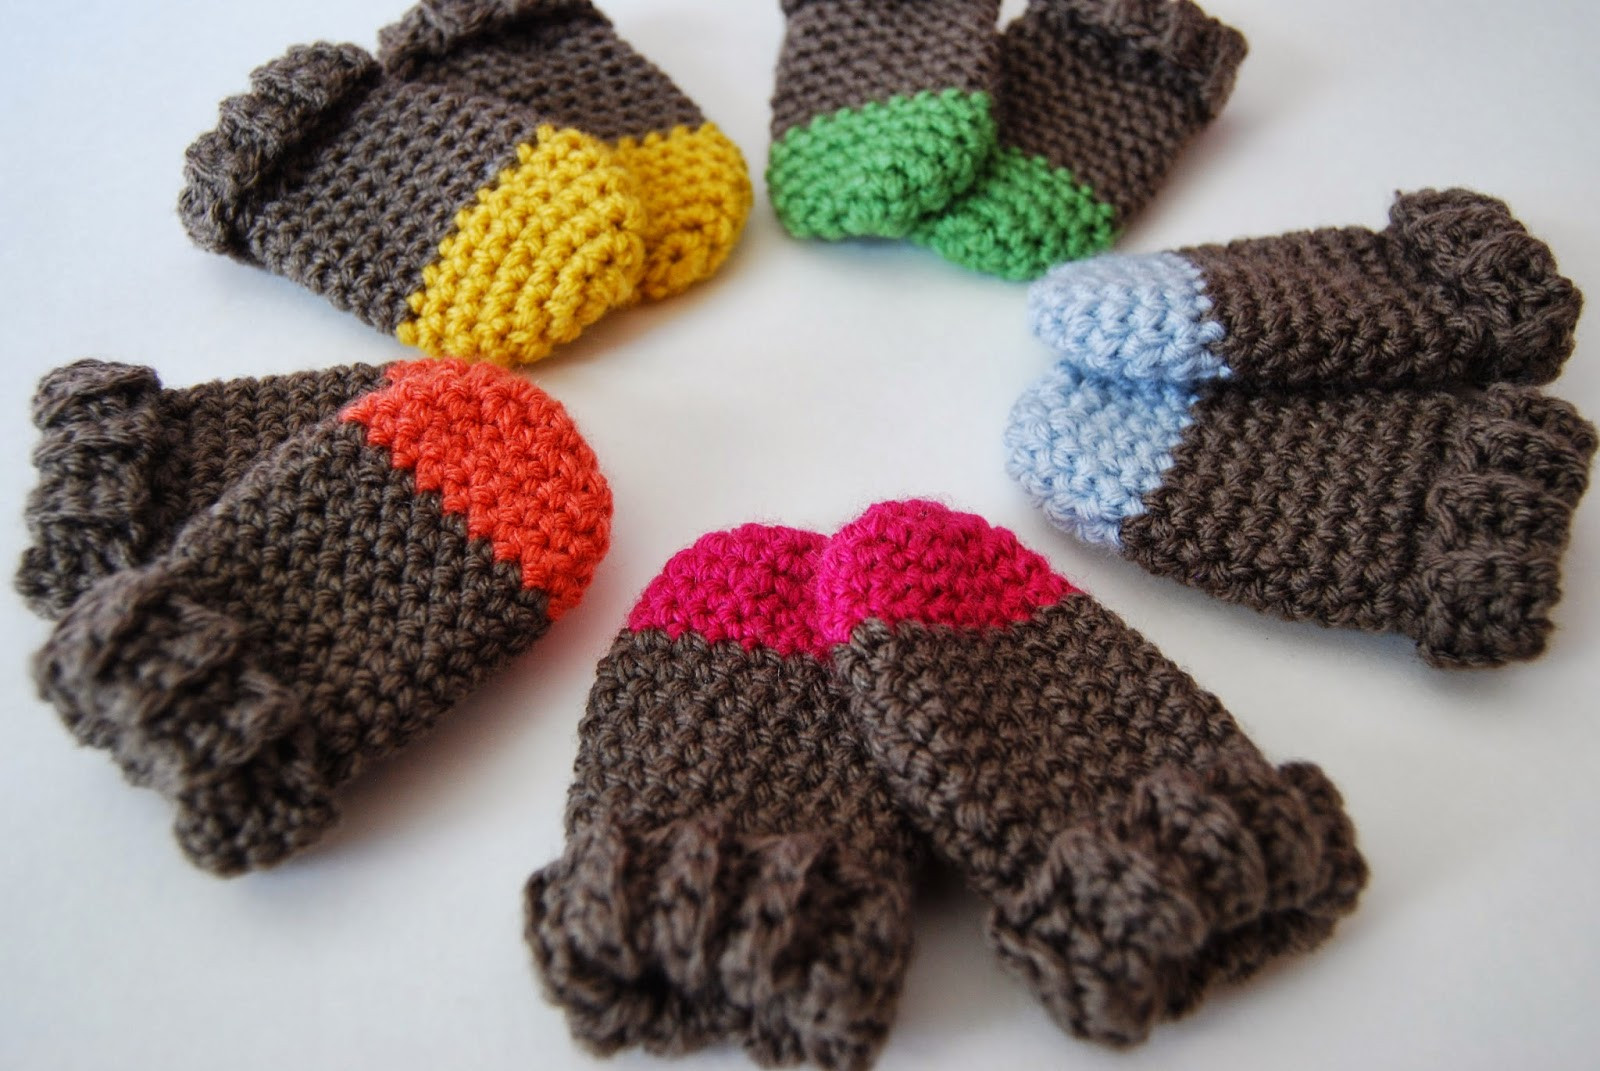 Crochet Mittens Unique Tangled Happy Two tone Baby Mittens Crochet Pattern Baby Of Brilliant 48 Pictures Crochet Mittens